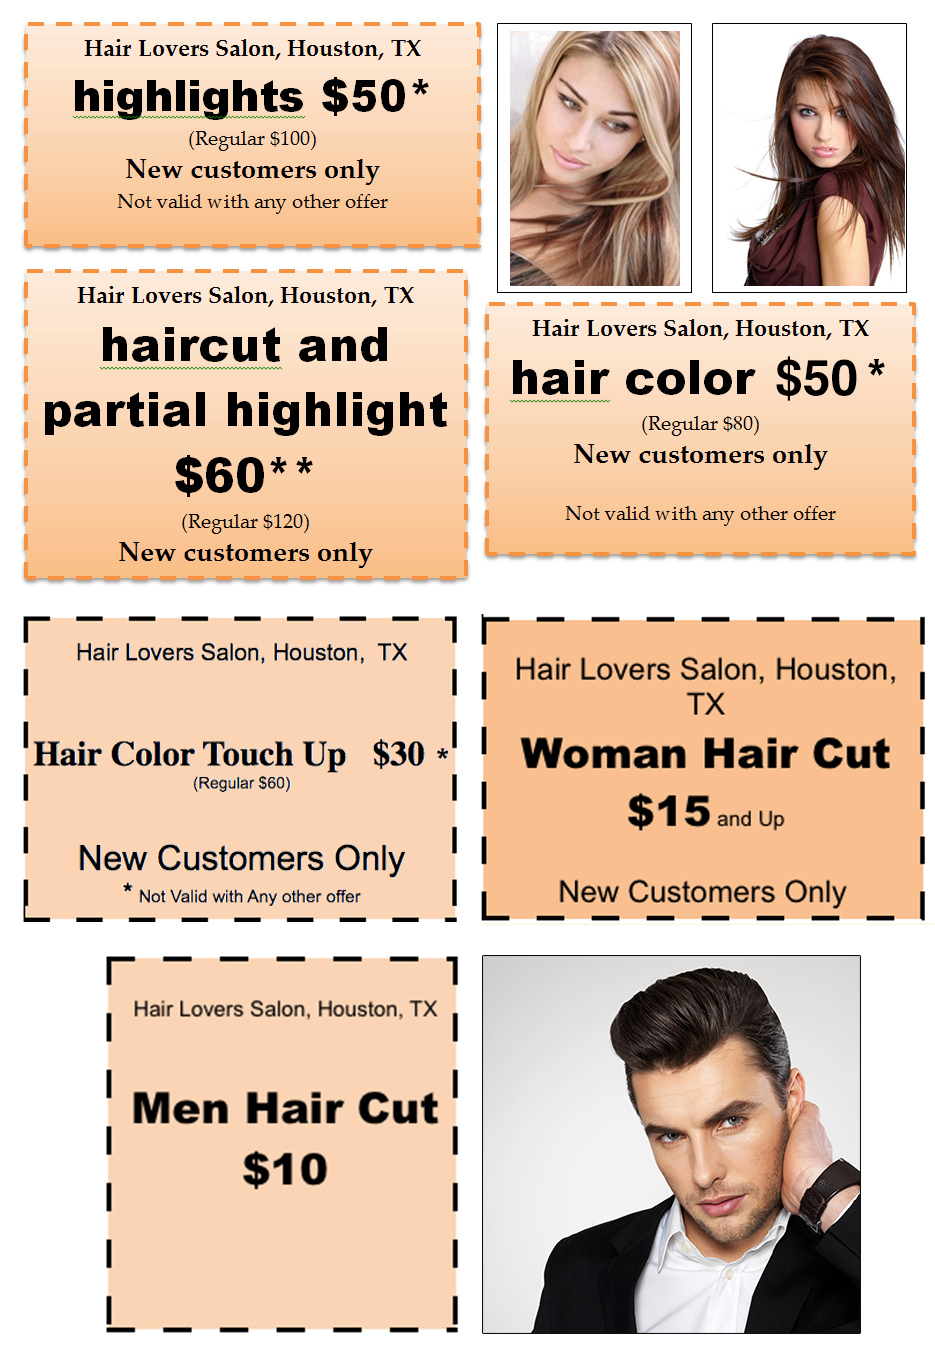 haircut and color coupons hair promotional coupons hair salon 4901